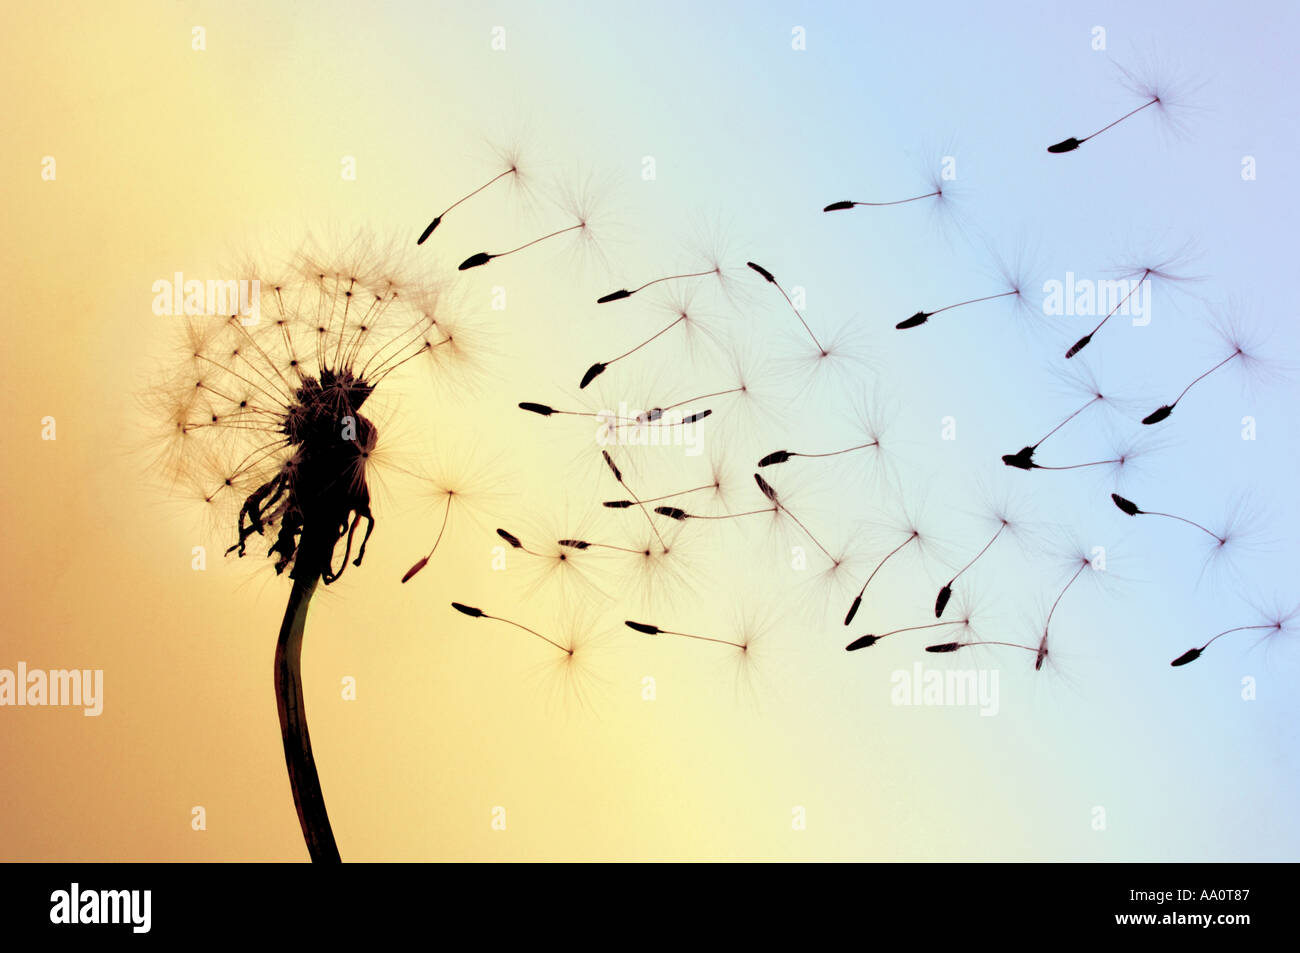 Dandelion seeds blown away by wind - Stock Image